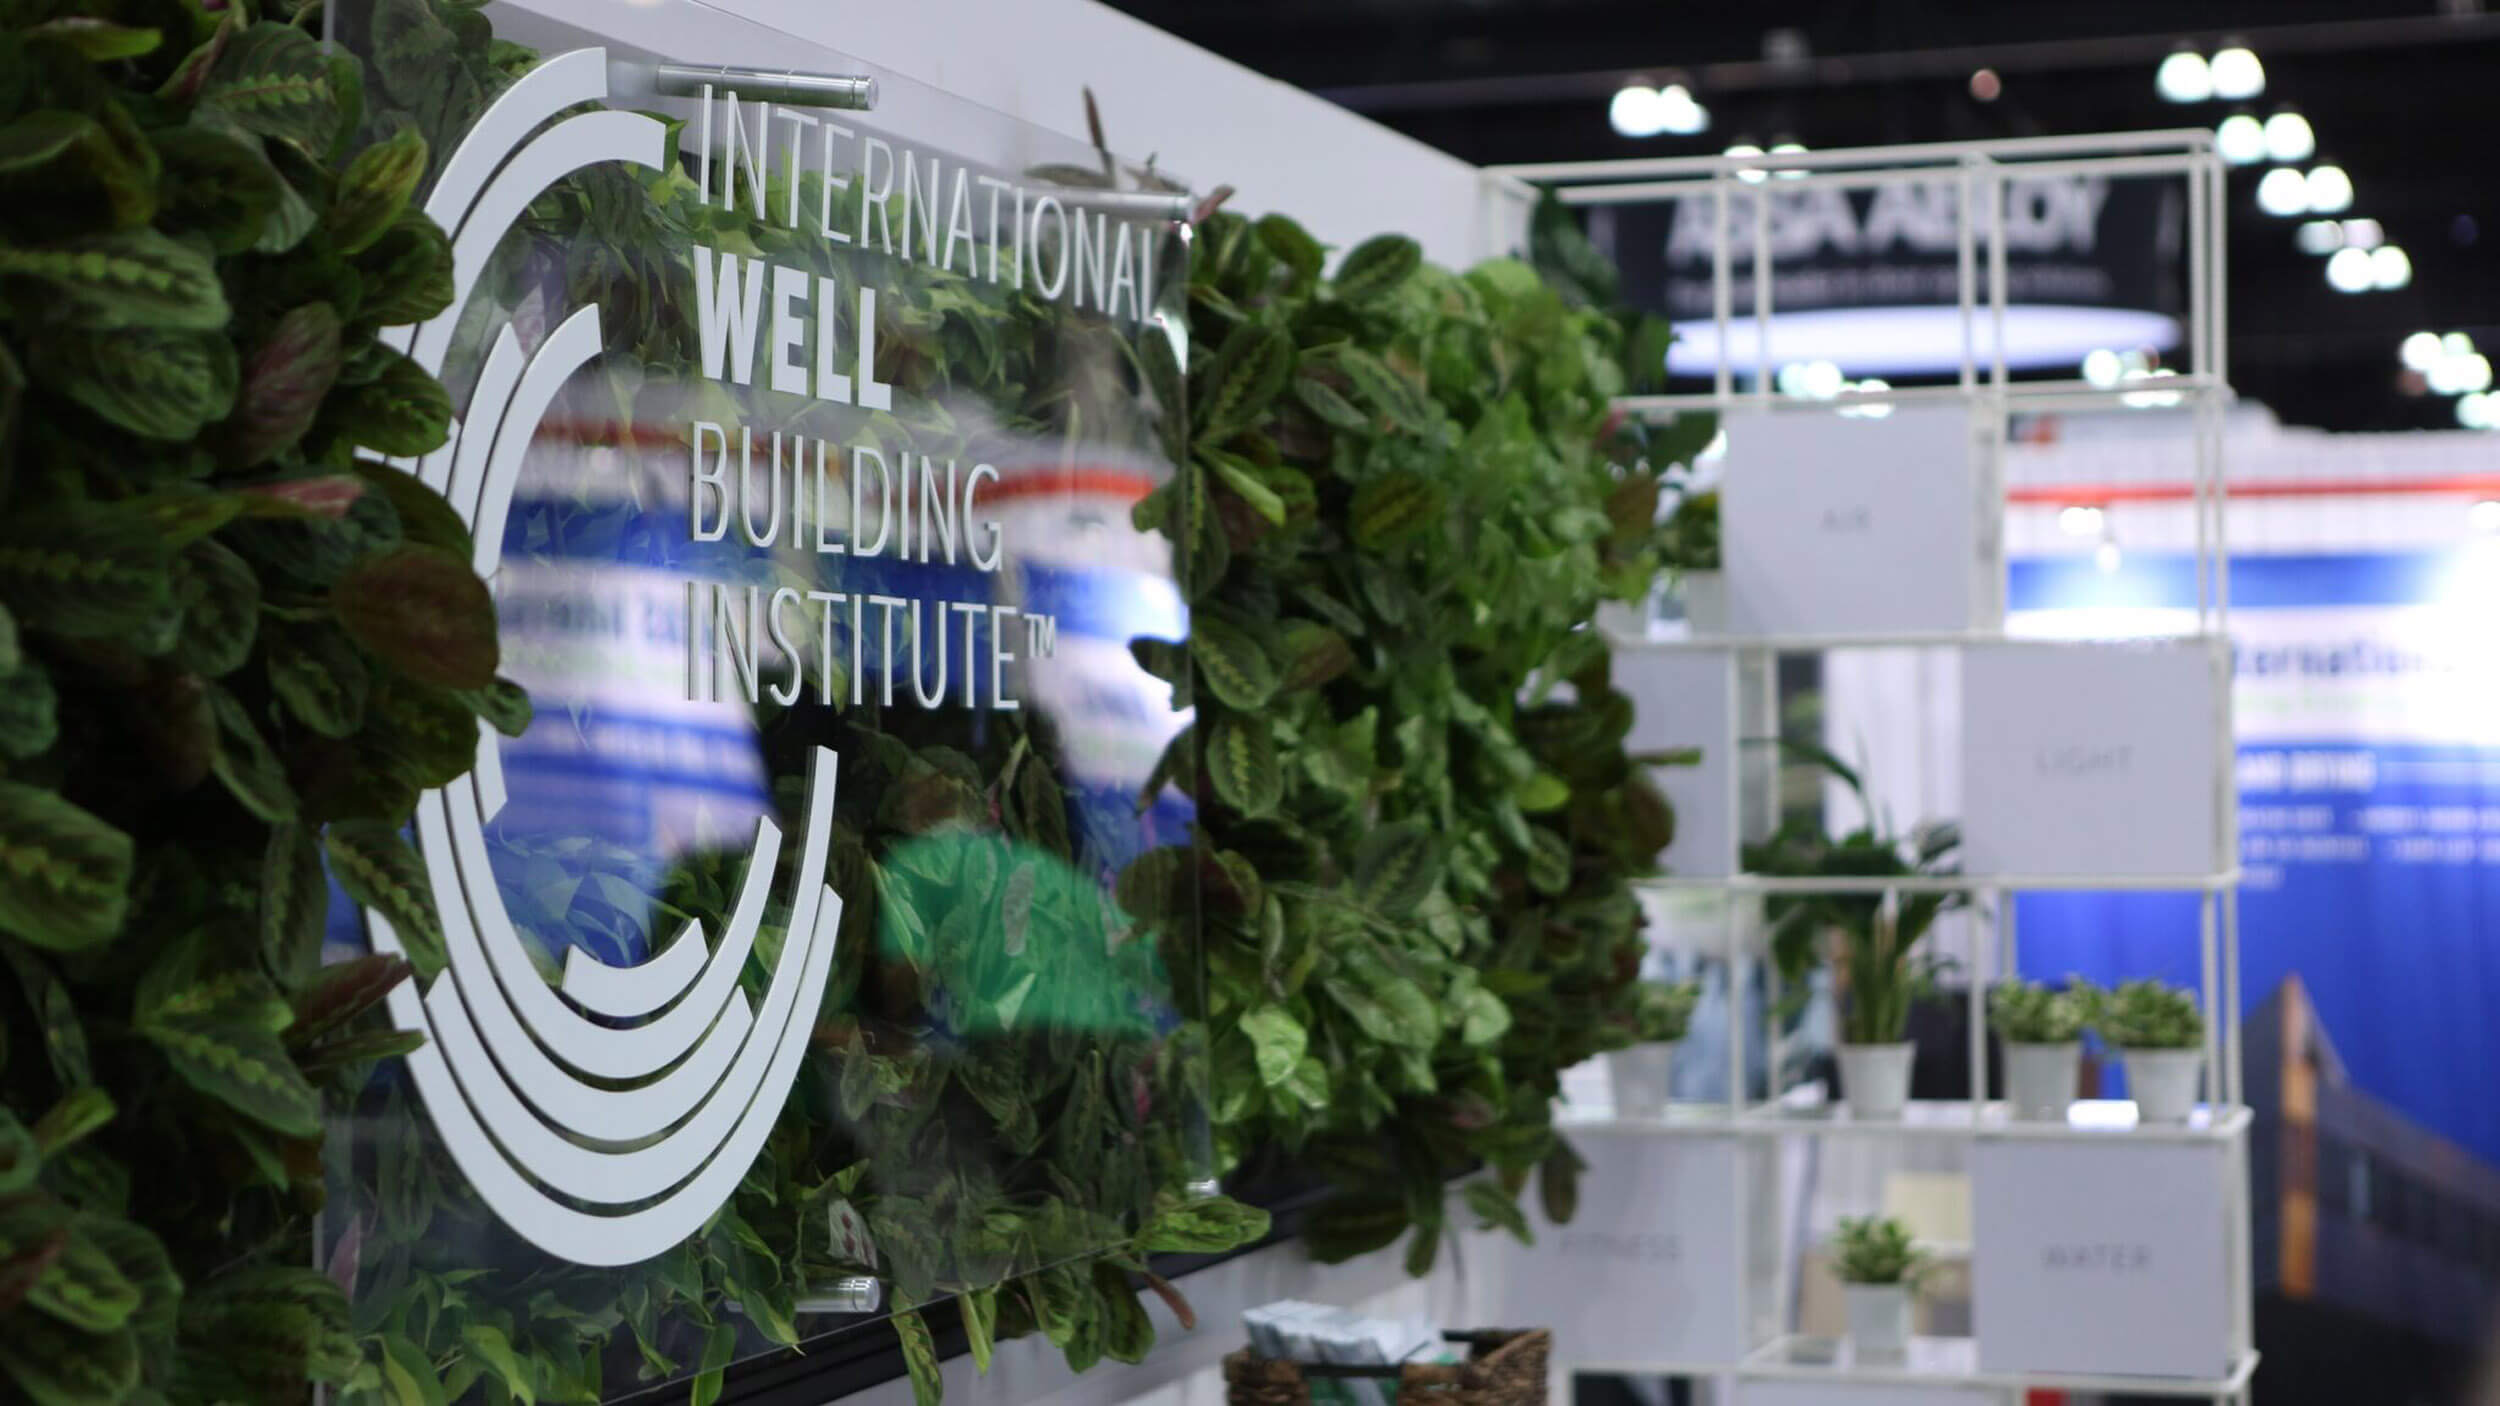 Tradeshow Living Wall Design by Suite Plants for Well Building Institute